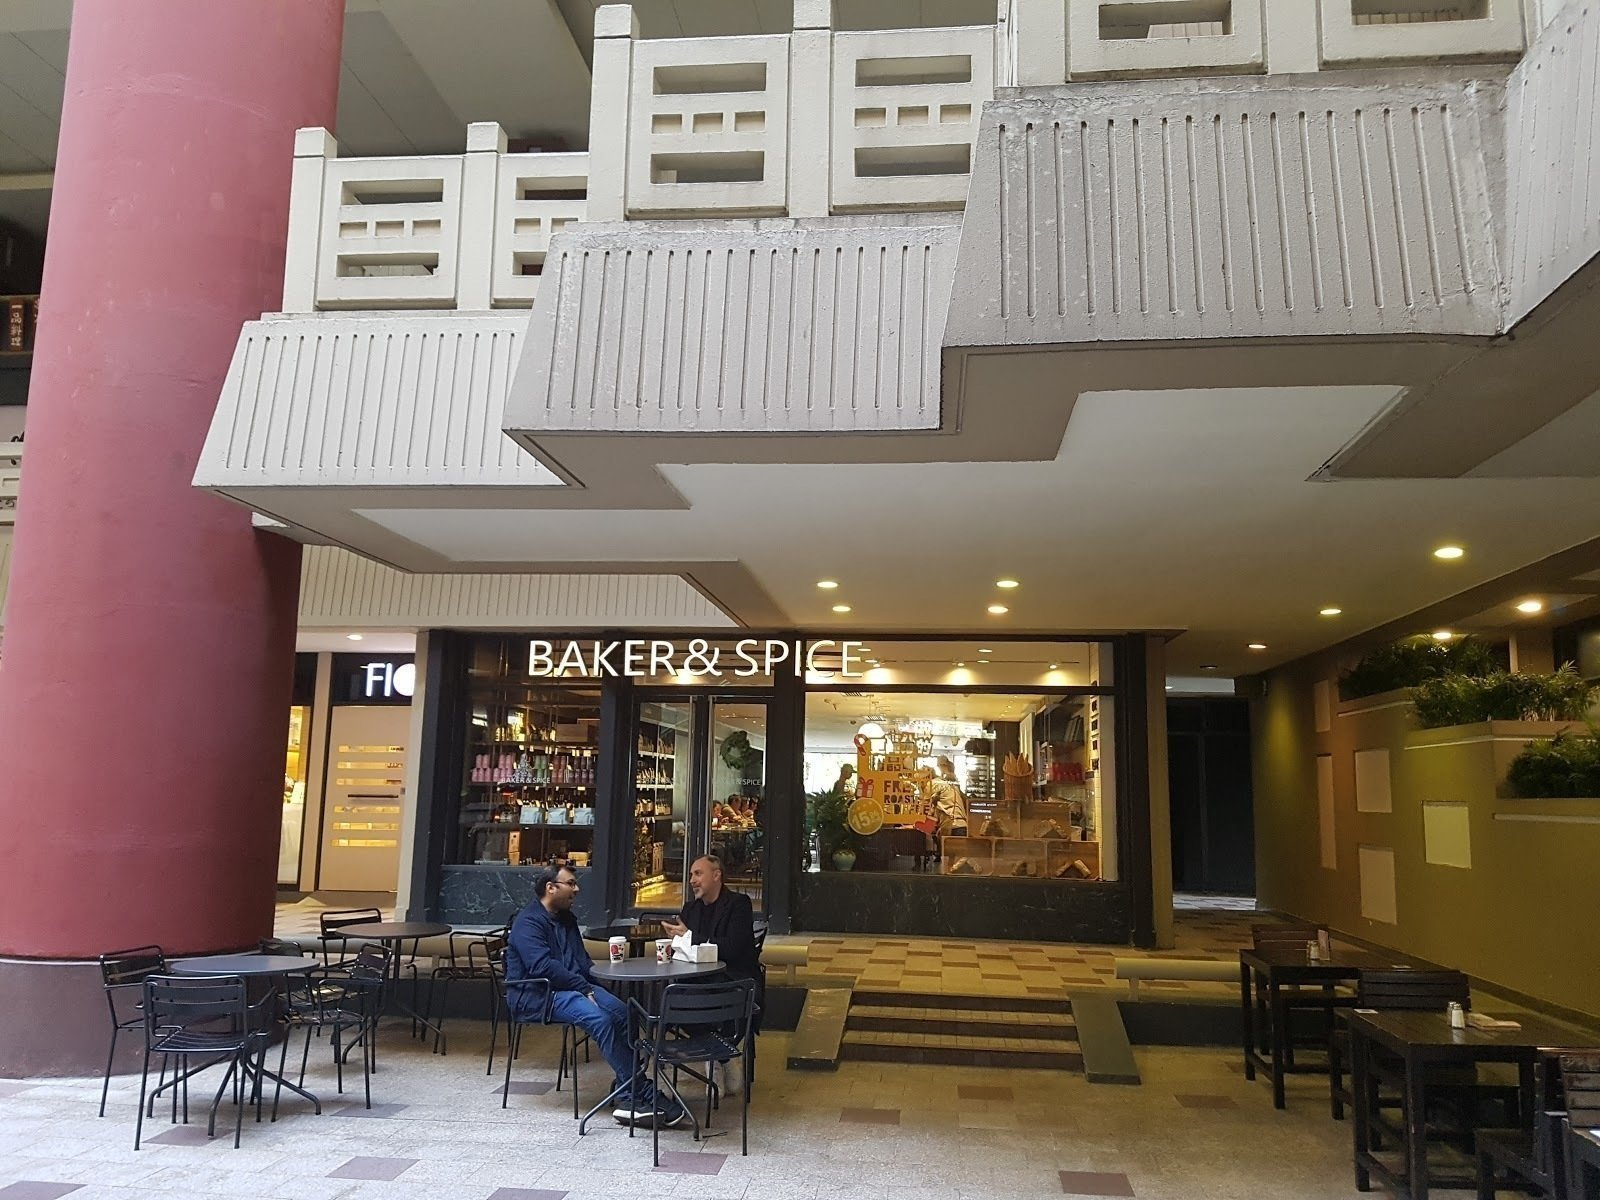 BAKER&SPICE: A Work-Friendly Place in Shanghai